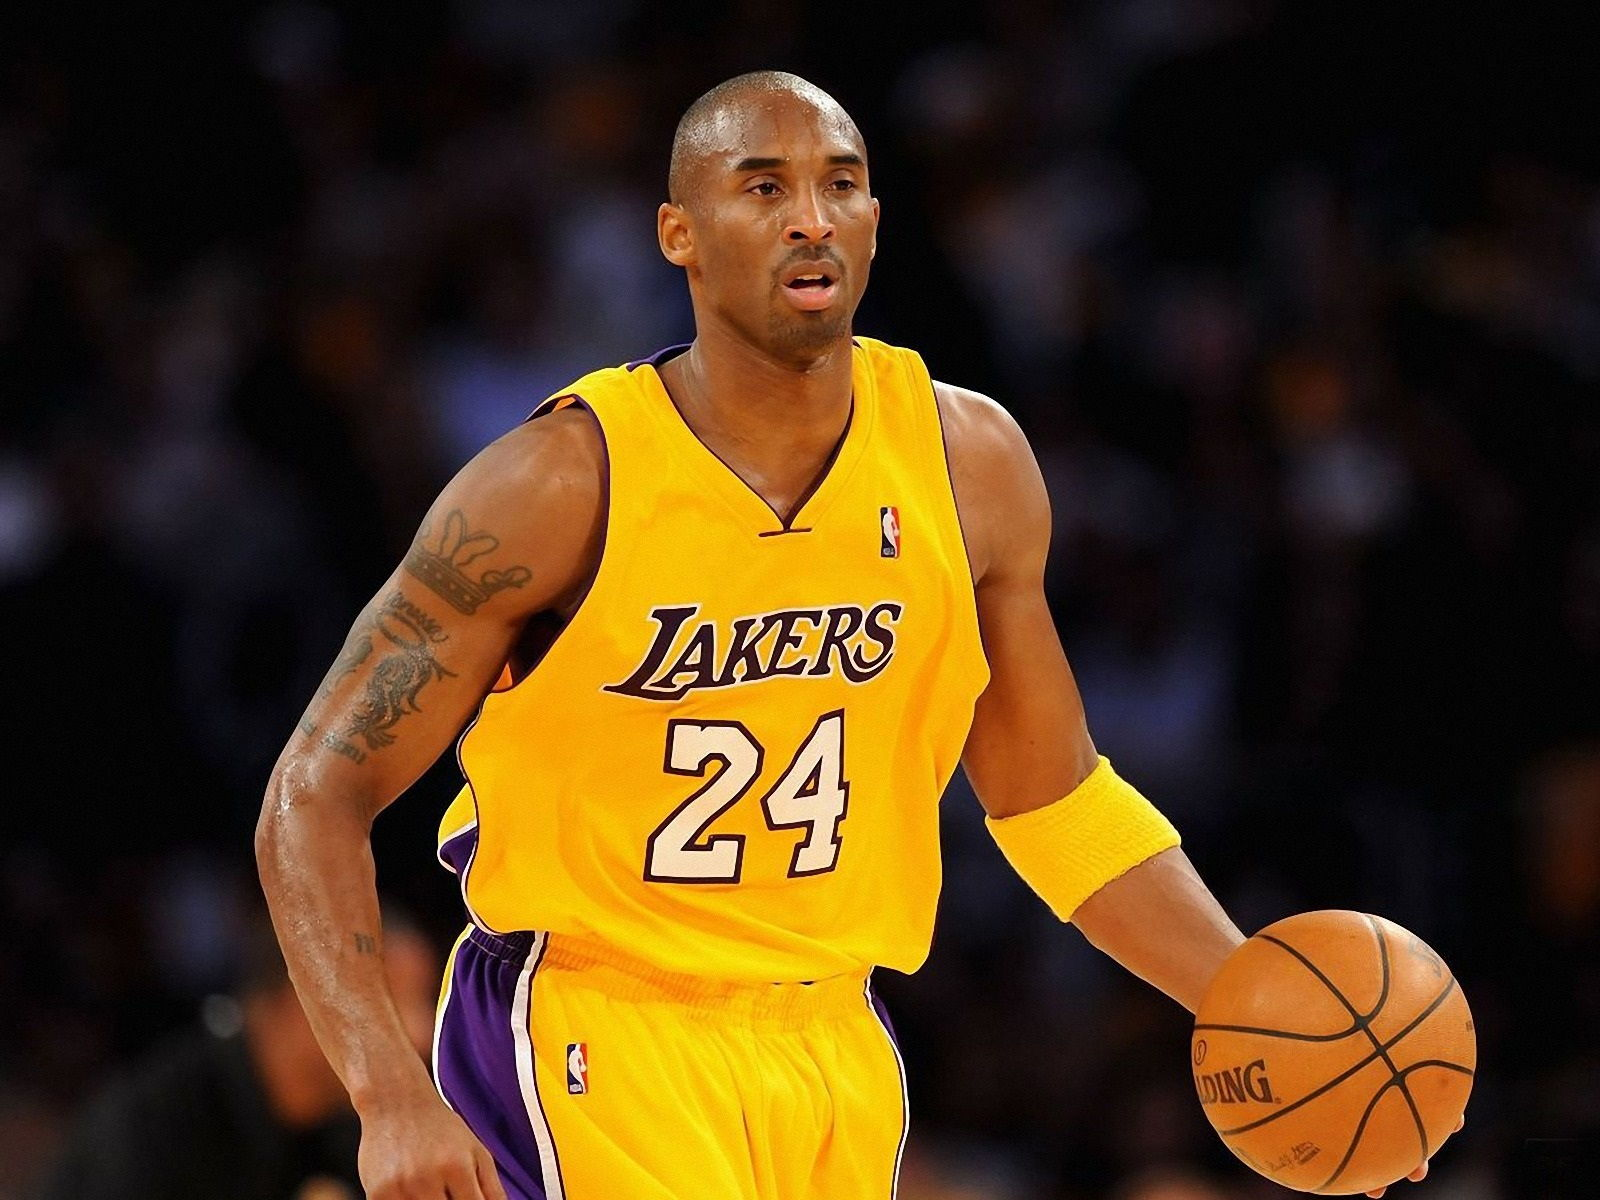 Basketball Players HD Wallpapers Player Images 1600x1200